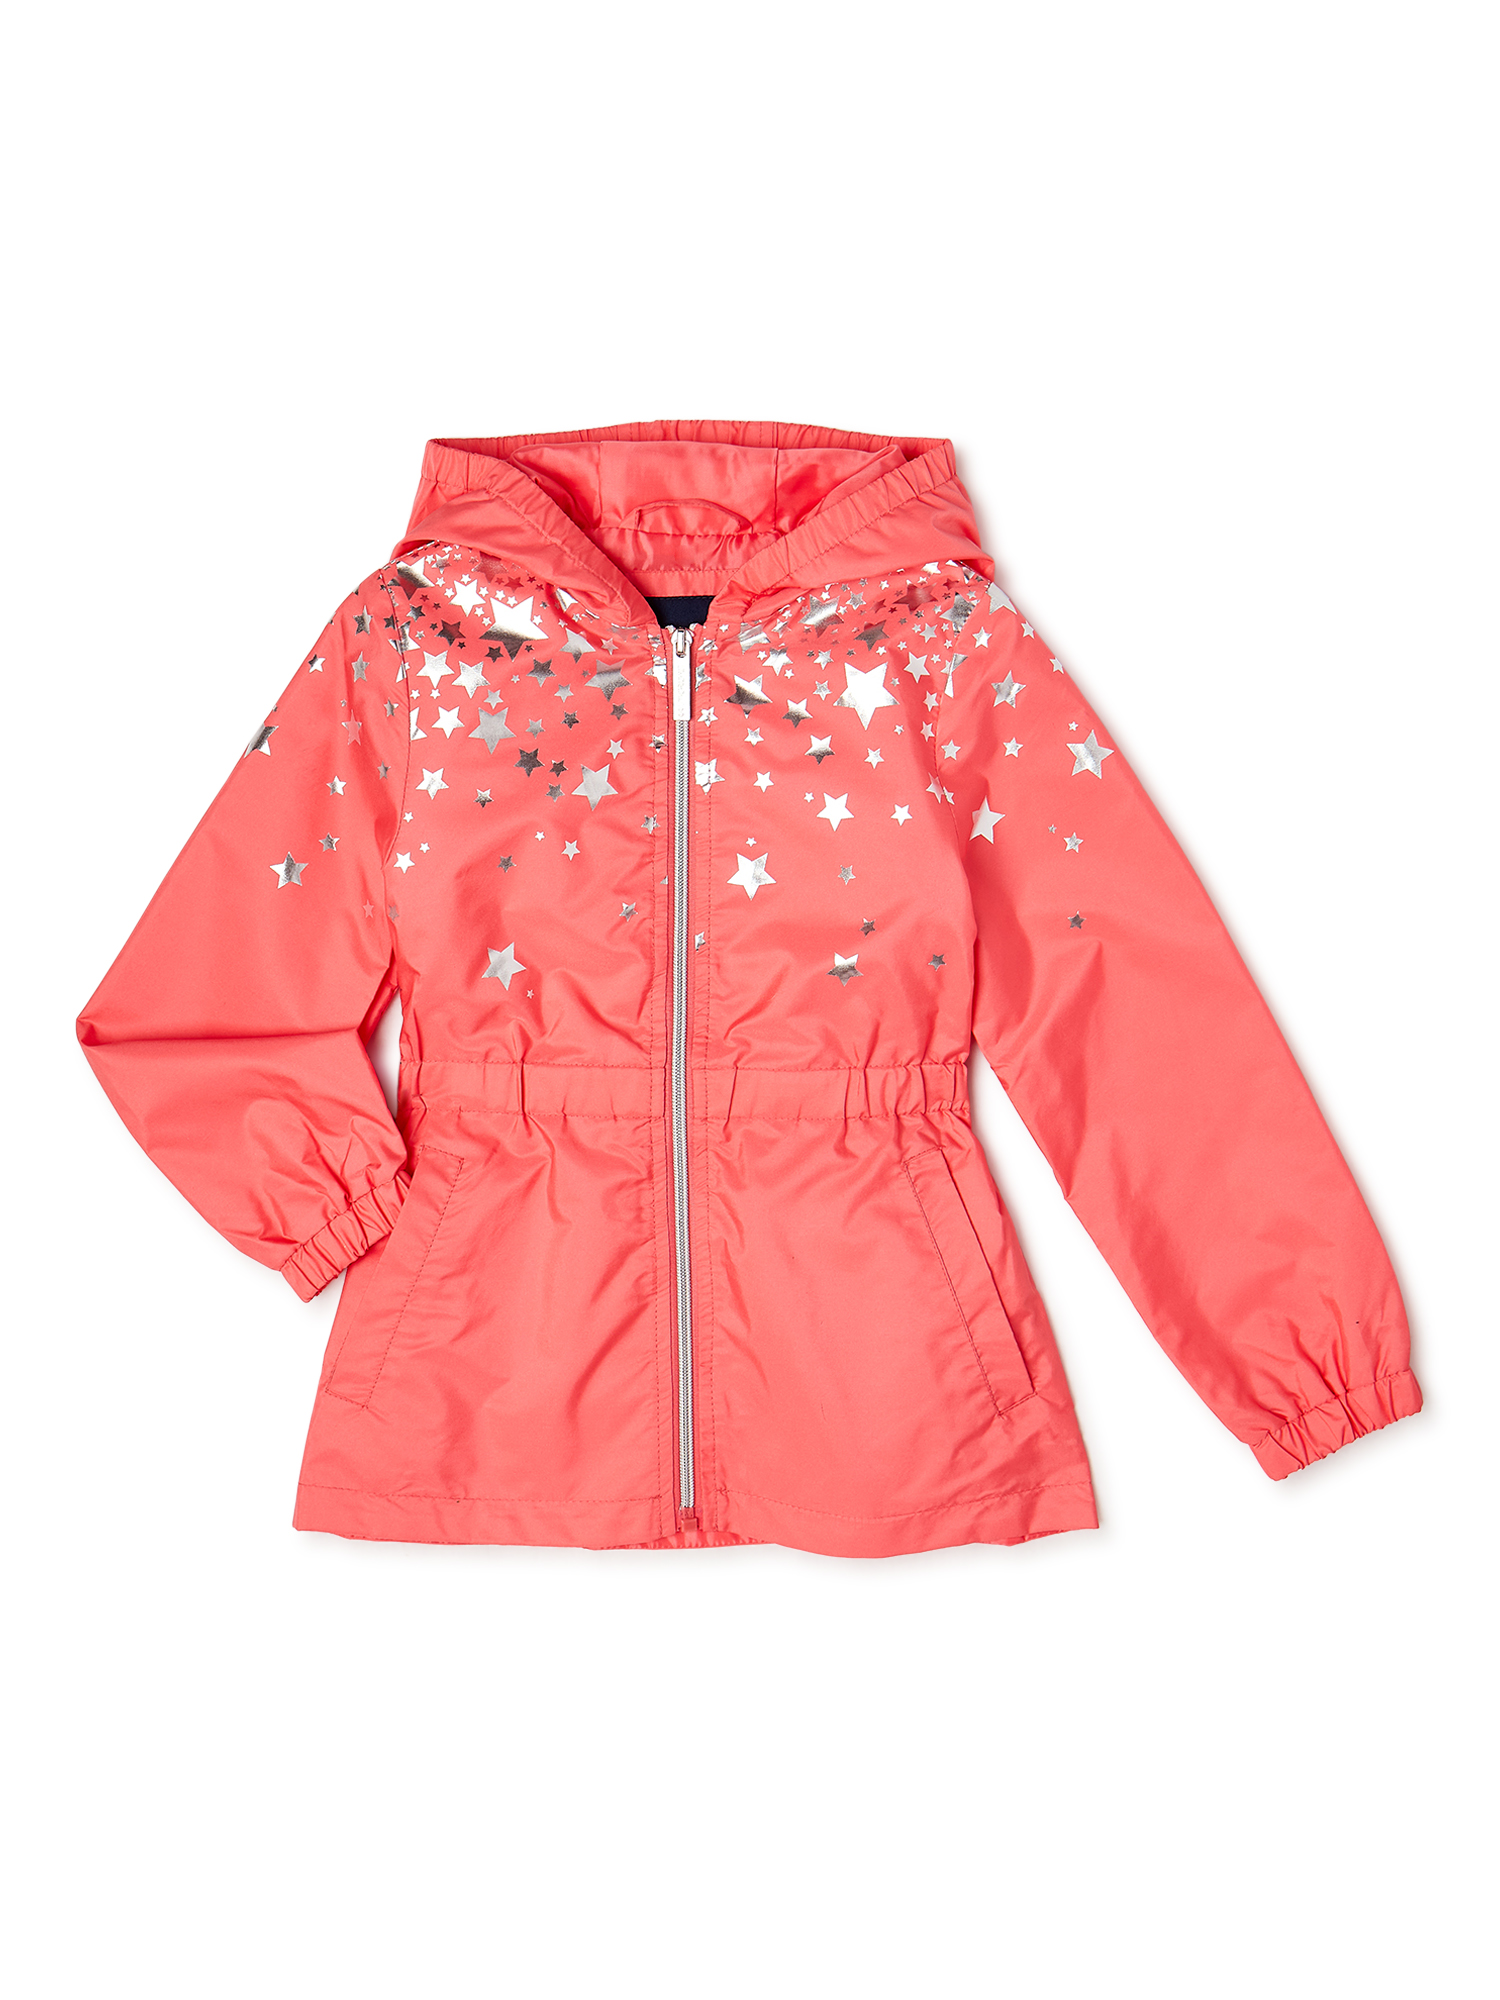 Red Country Girl Riding-Style Jacket with a Teddy Bear and Apple by Kids Headquarters Size 5